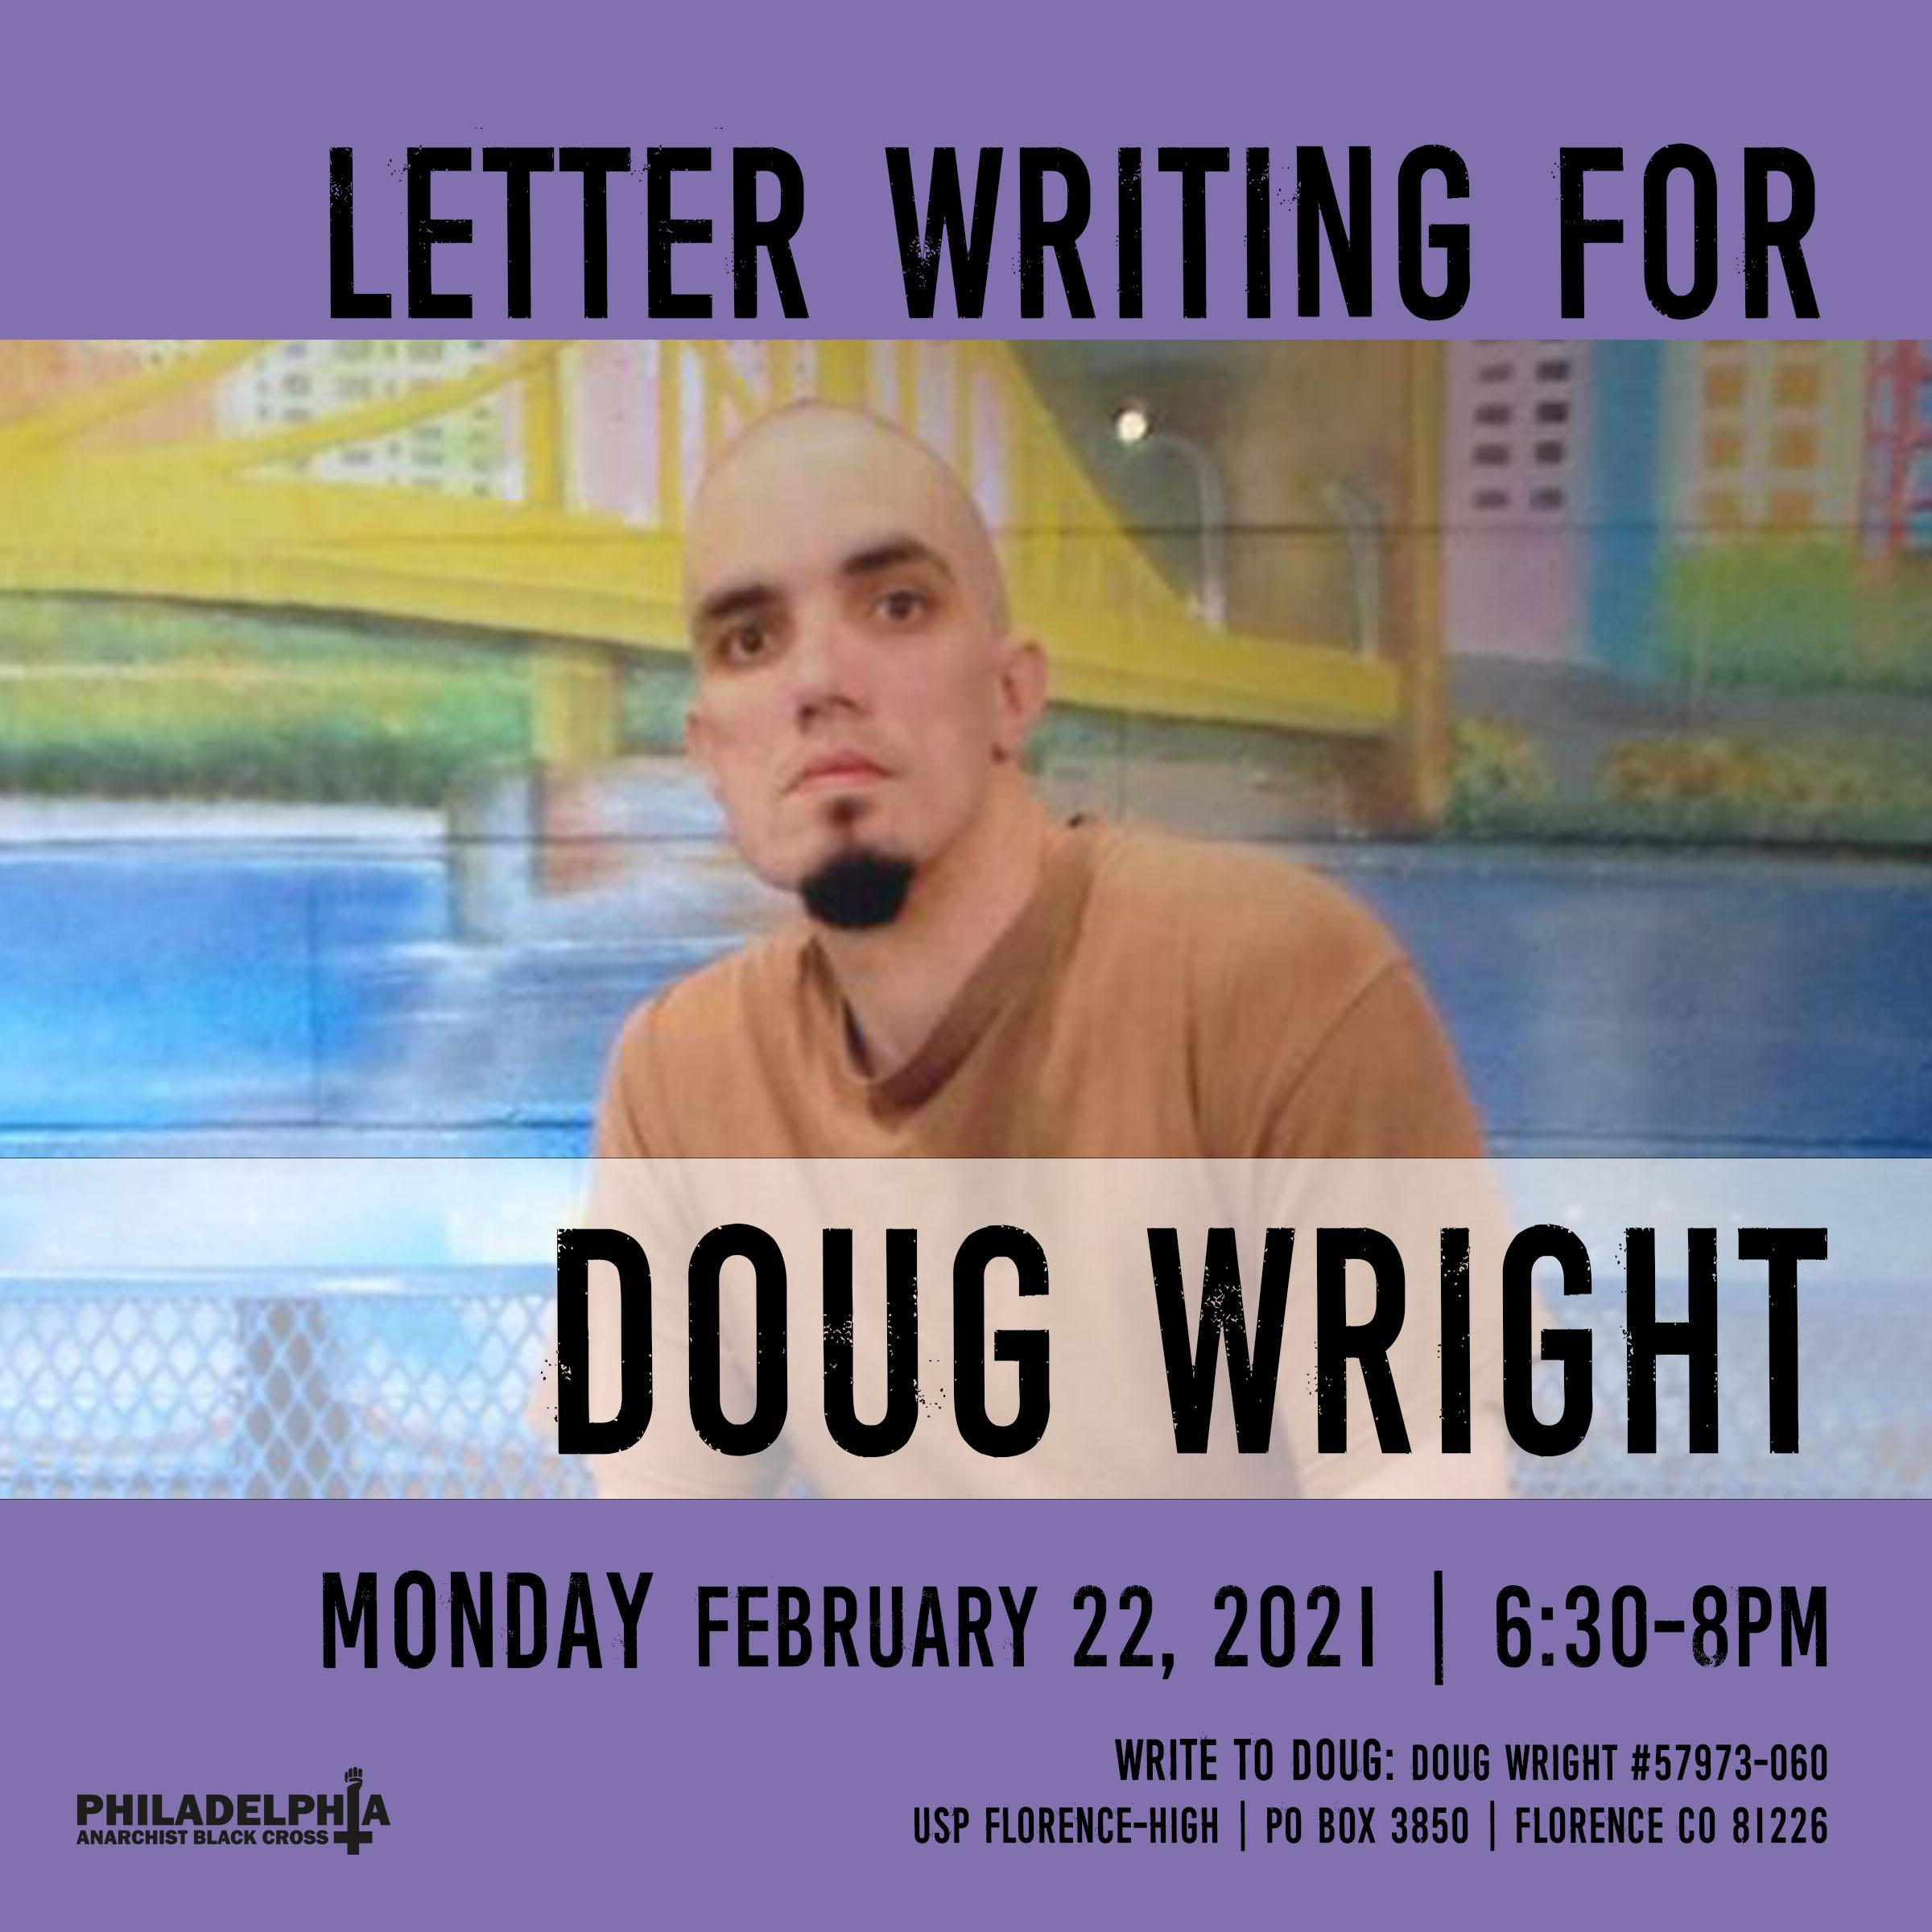 Monday February 22nd: Letter-writing for Doug Wright